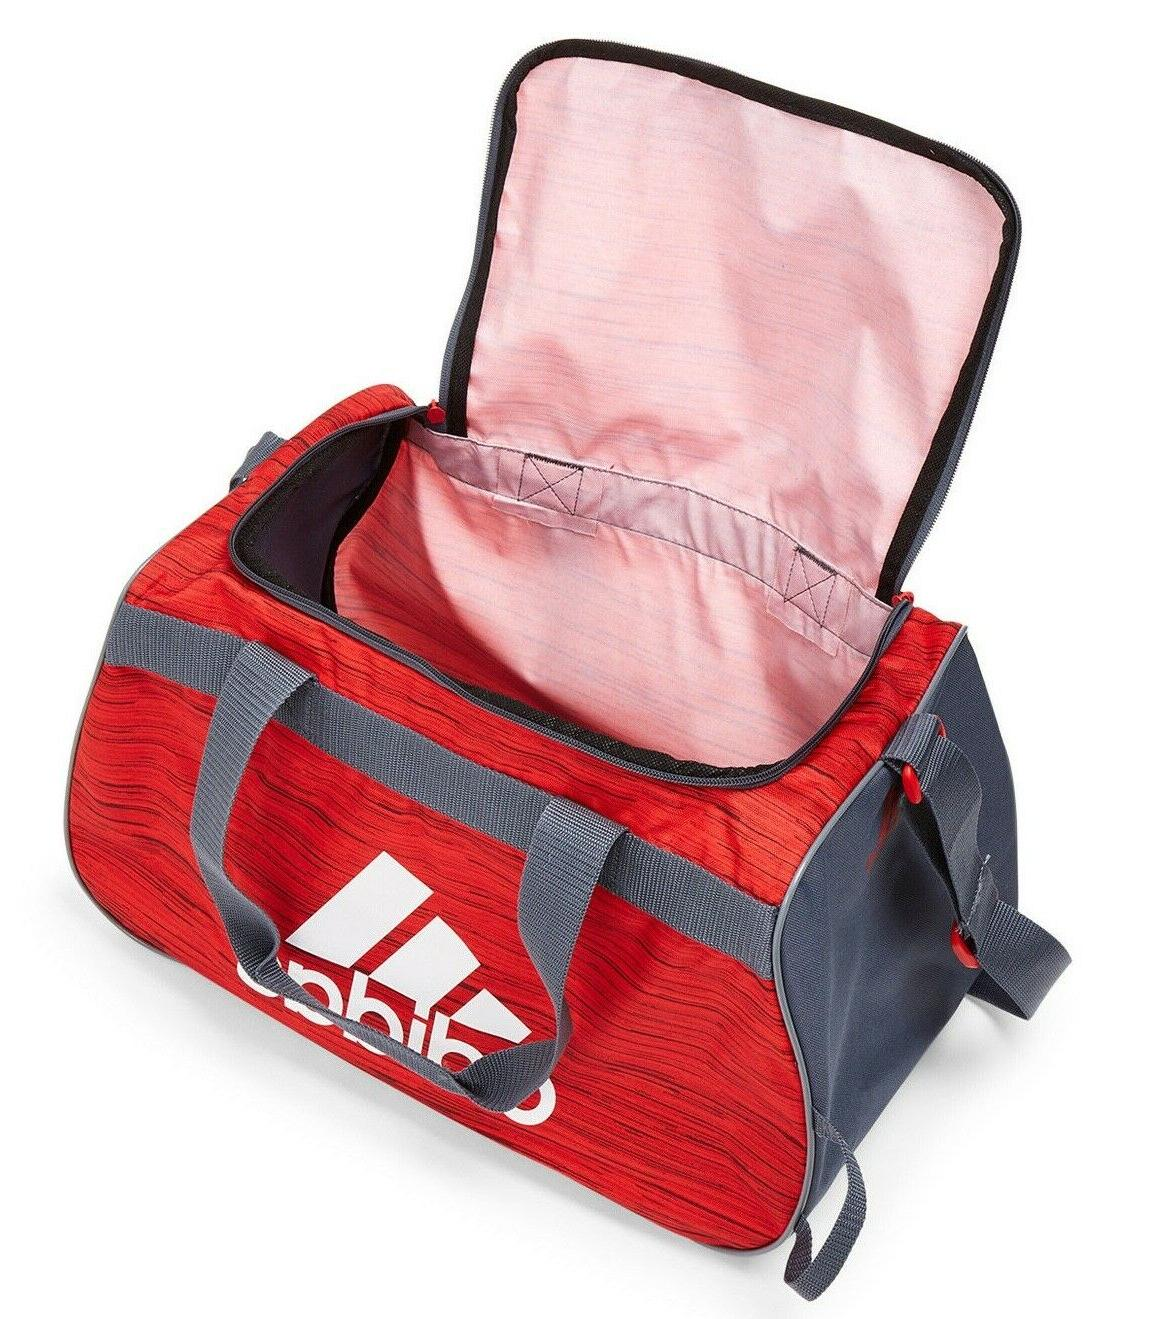 ADIDAS SMALL RED WHITE TOP Sports Locker Bag NEW